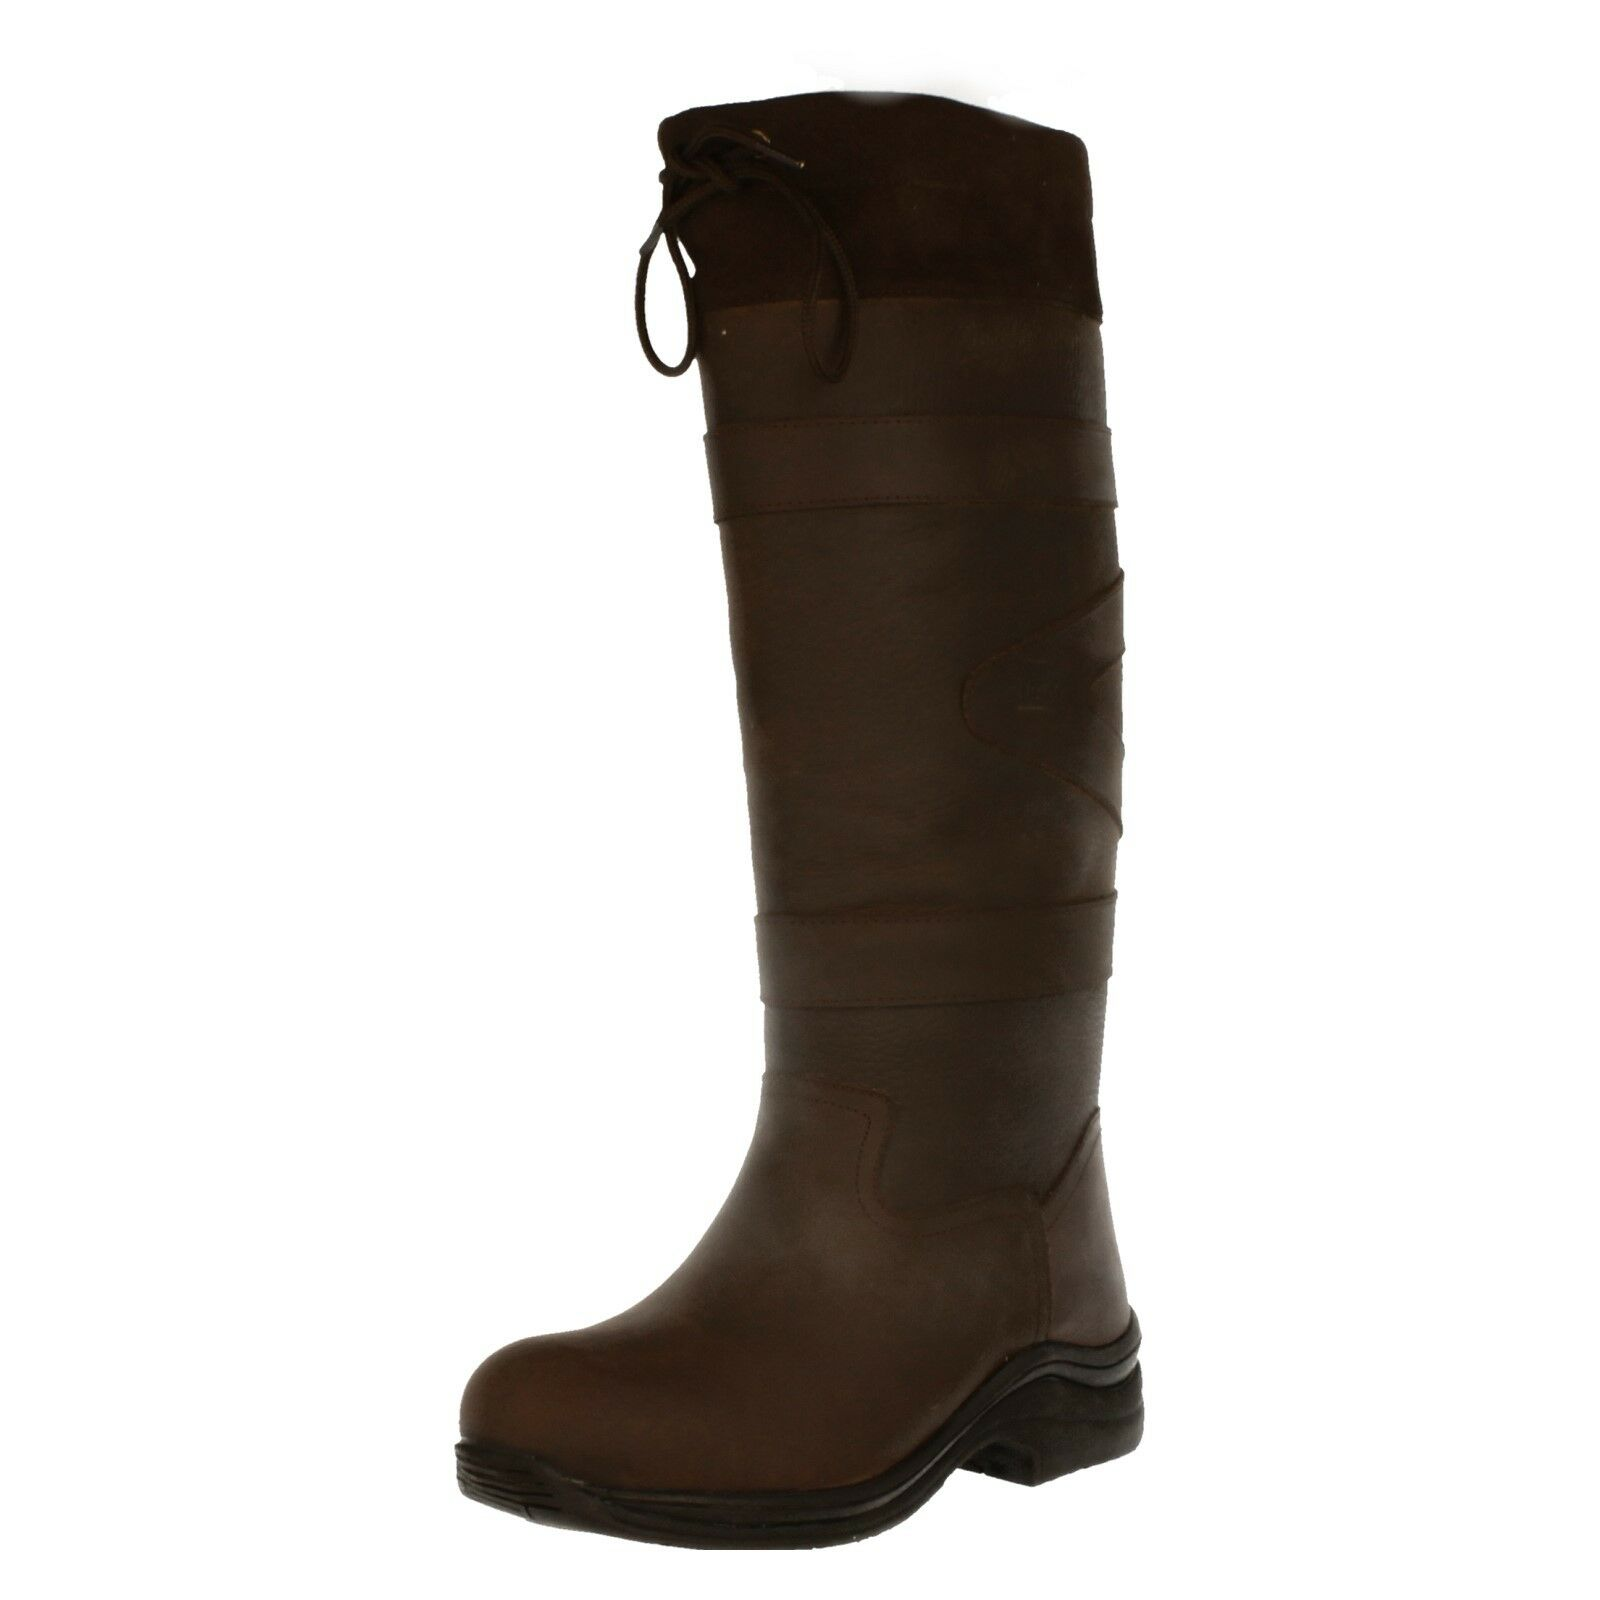 Unisex Toggi Waterproof Country Boot - Canyon